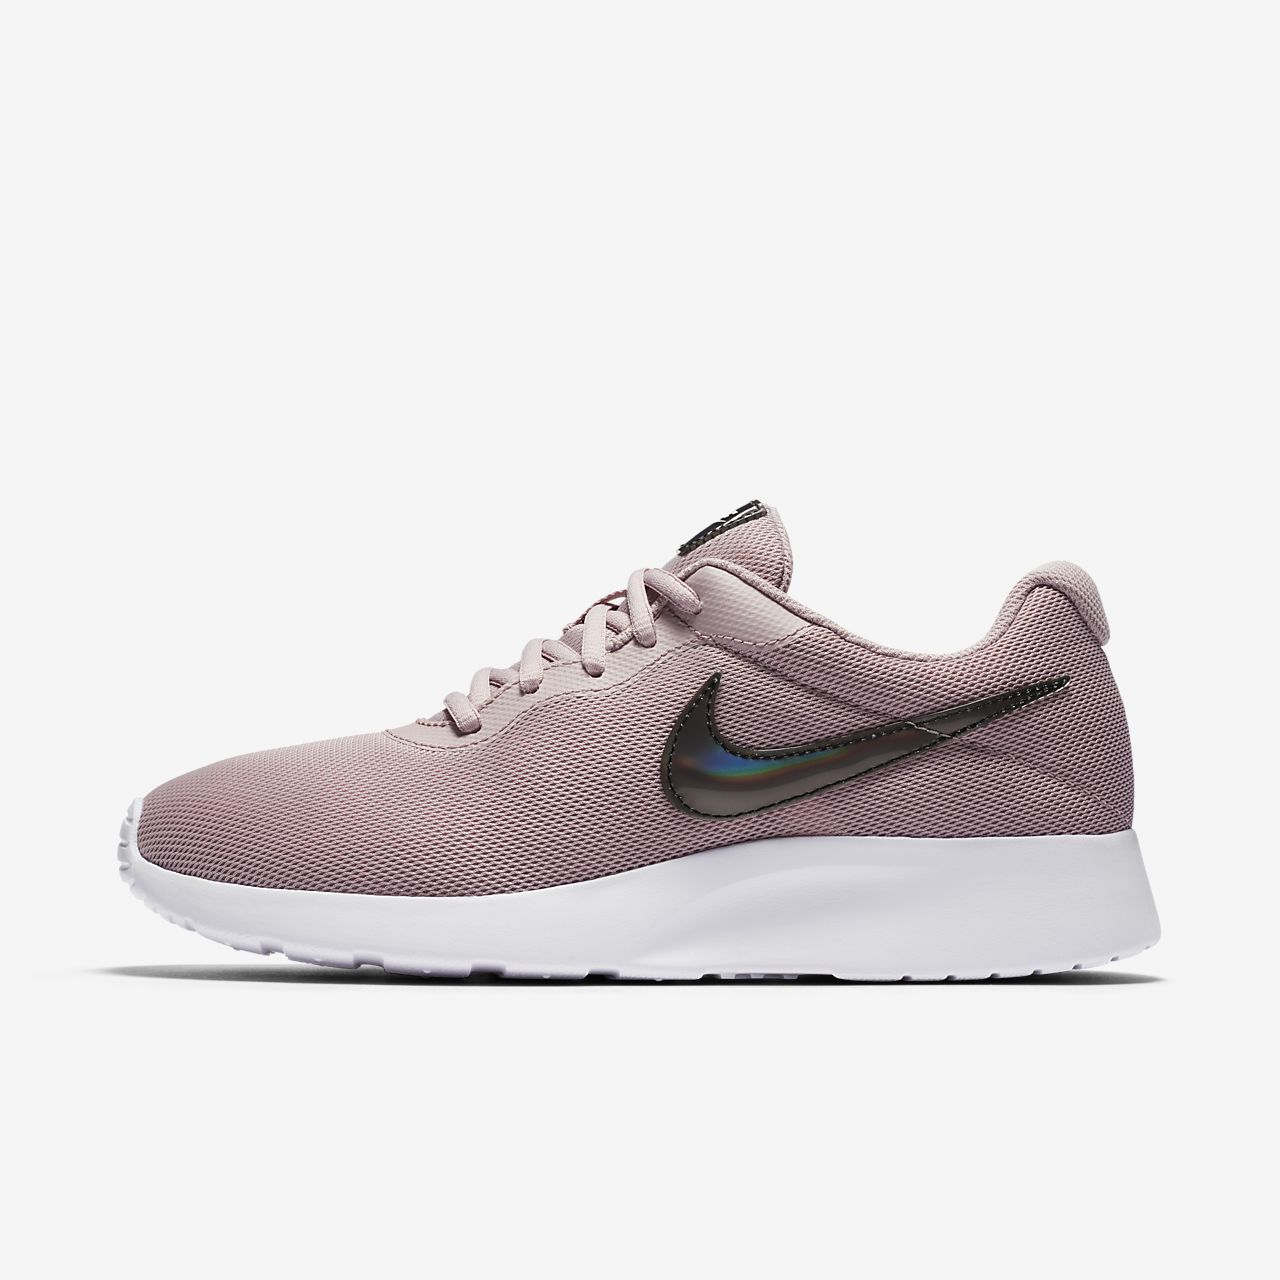 1007274ff8f Low Resolution Nike Tanjun Women s Shoe Nike Tanjun Women s Shoe